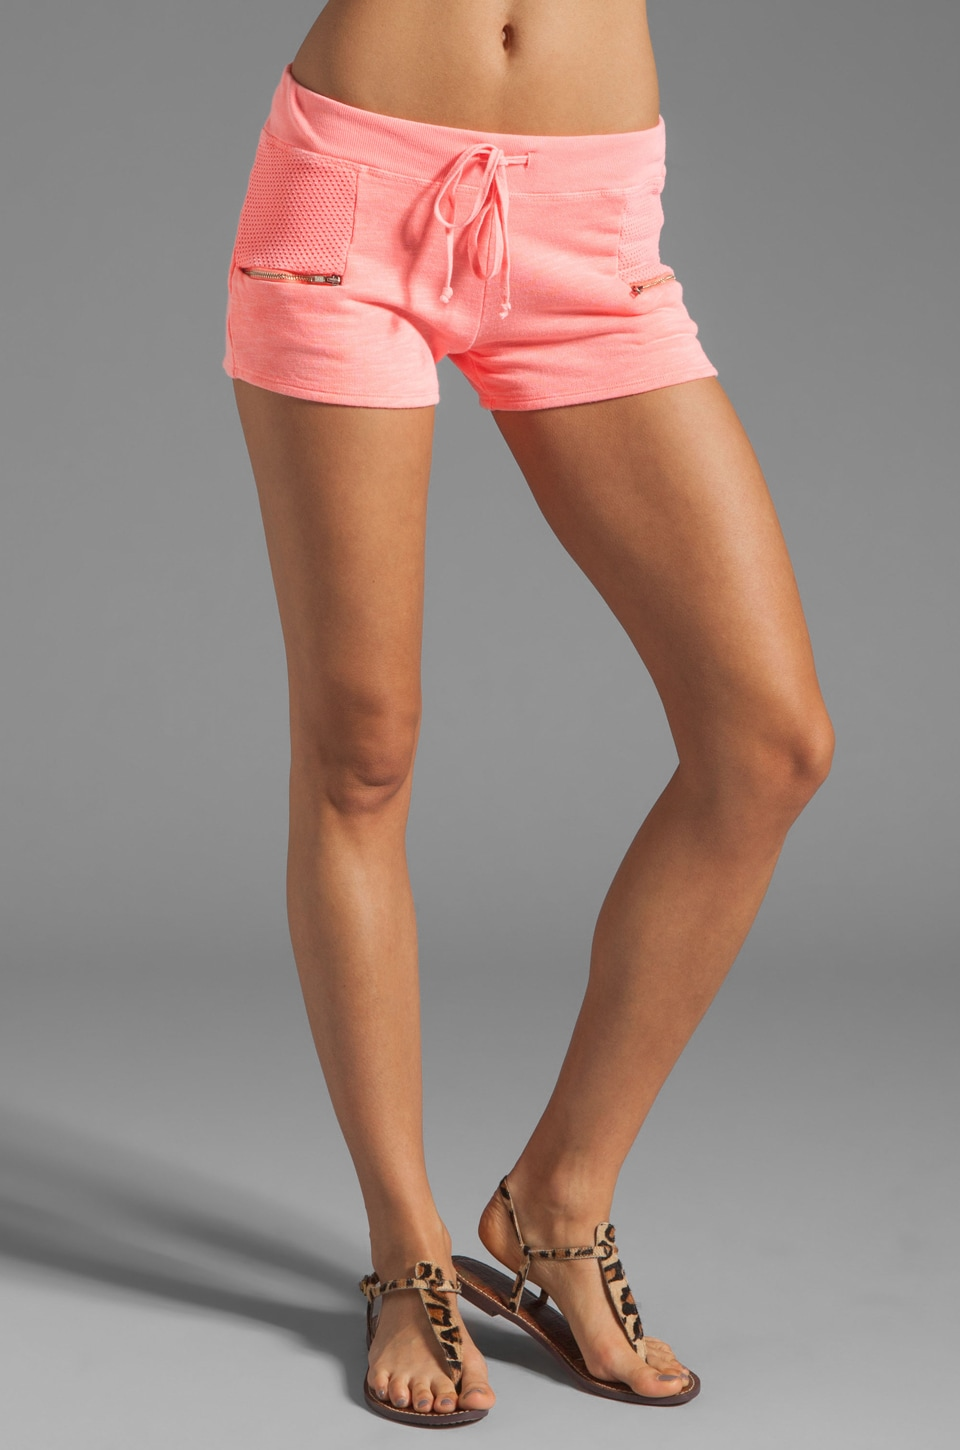 SOLOW Short with Mesh Pocket in Peach